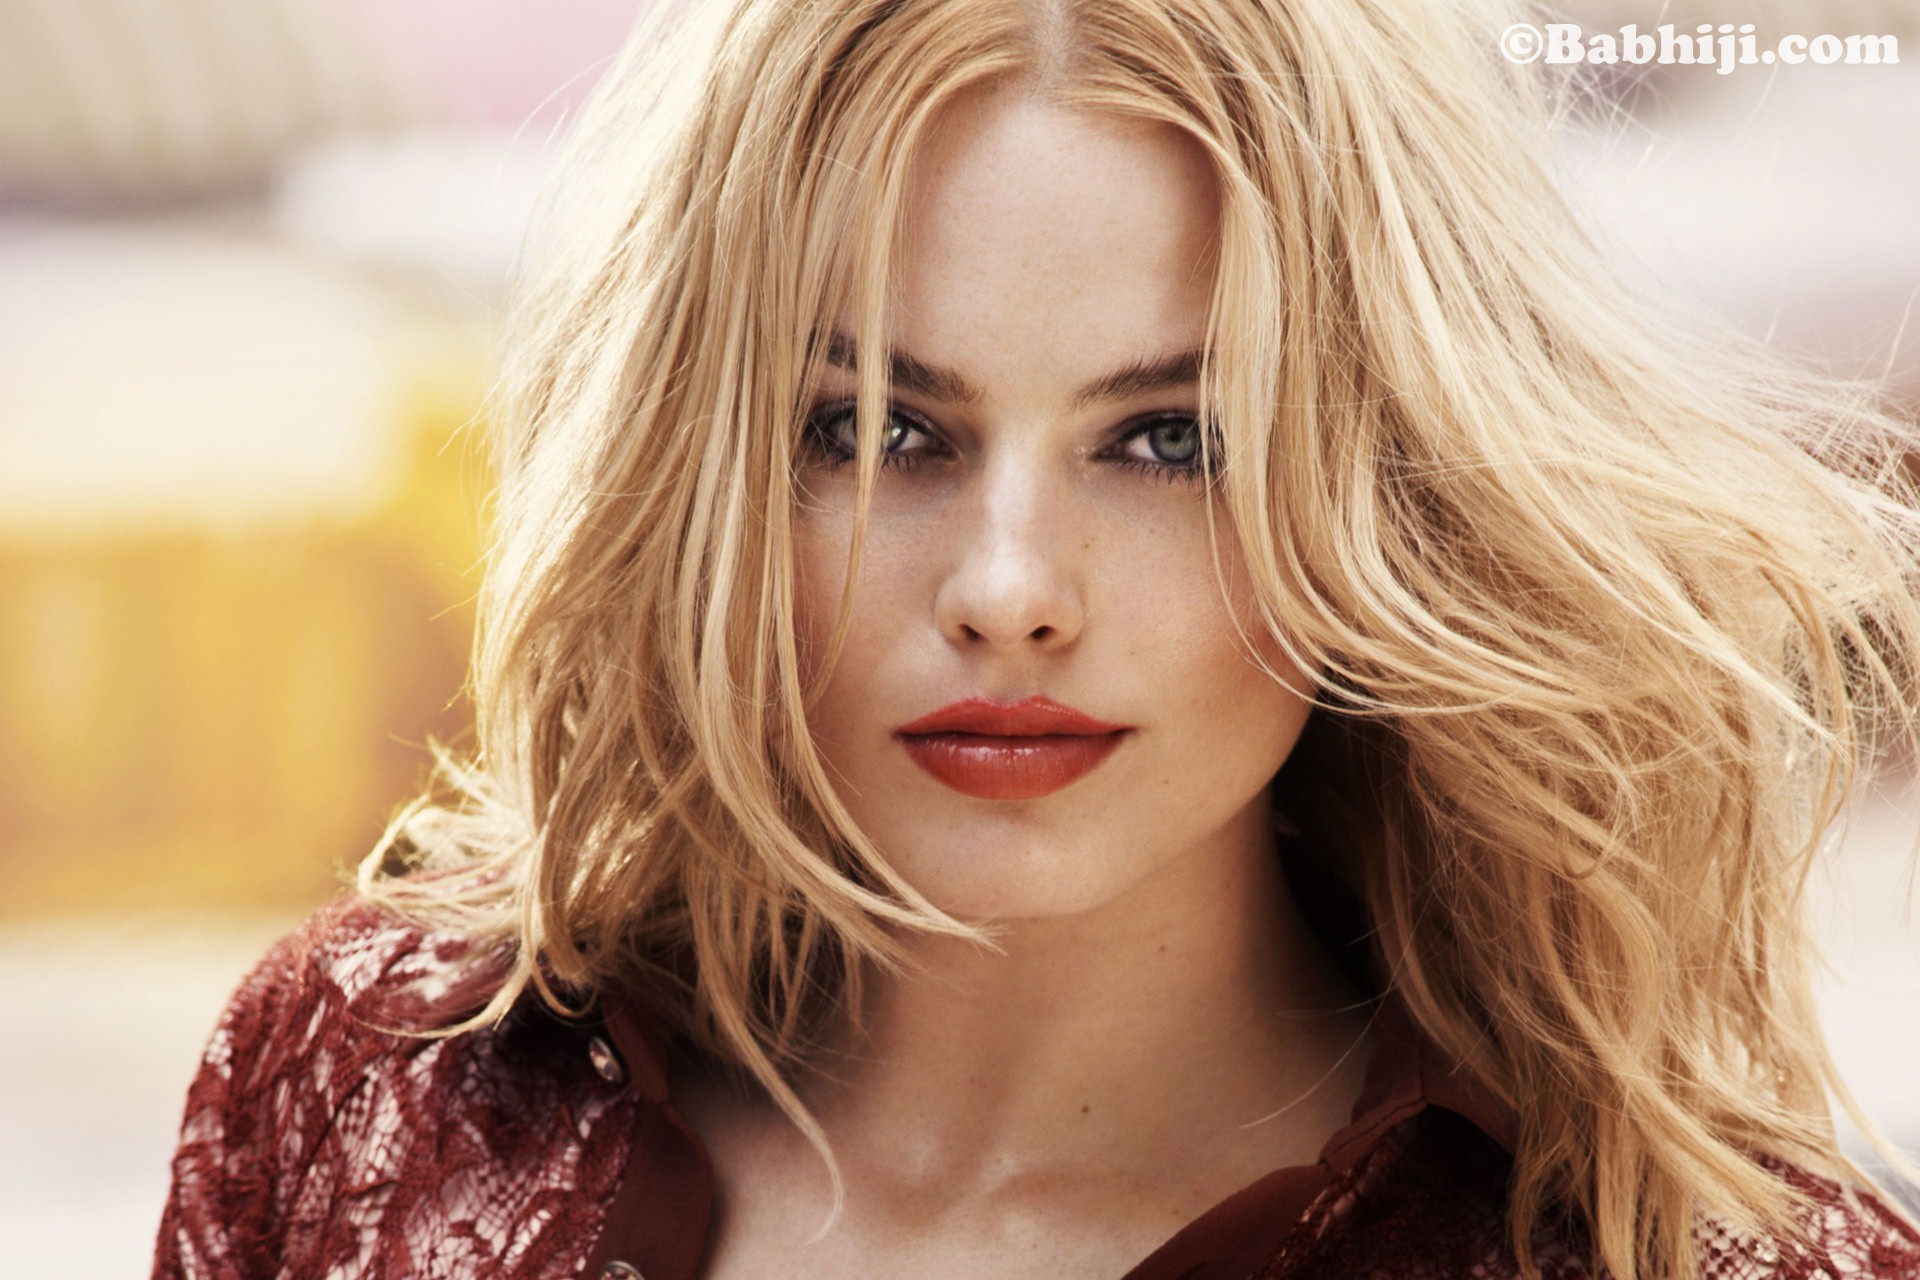 Margot Robbie, Margot Robbie Wallpaper, Margot Robbie Photo, Margot Robbie Images